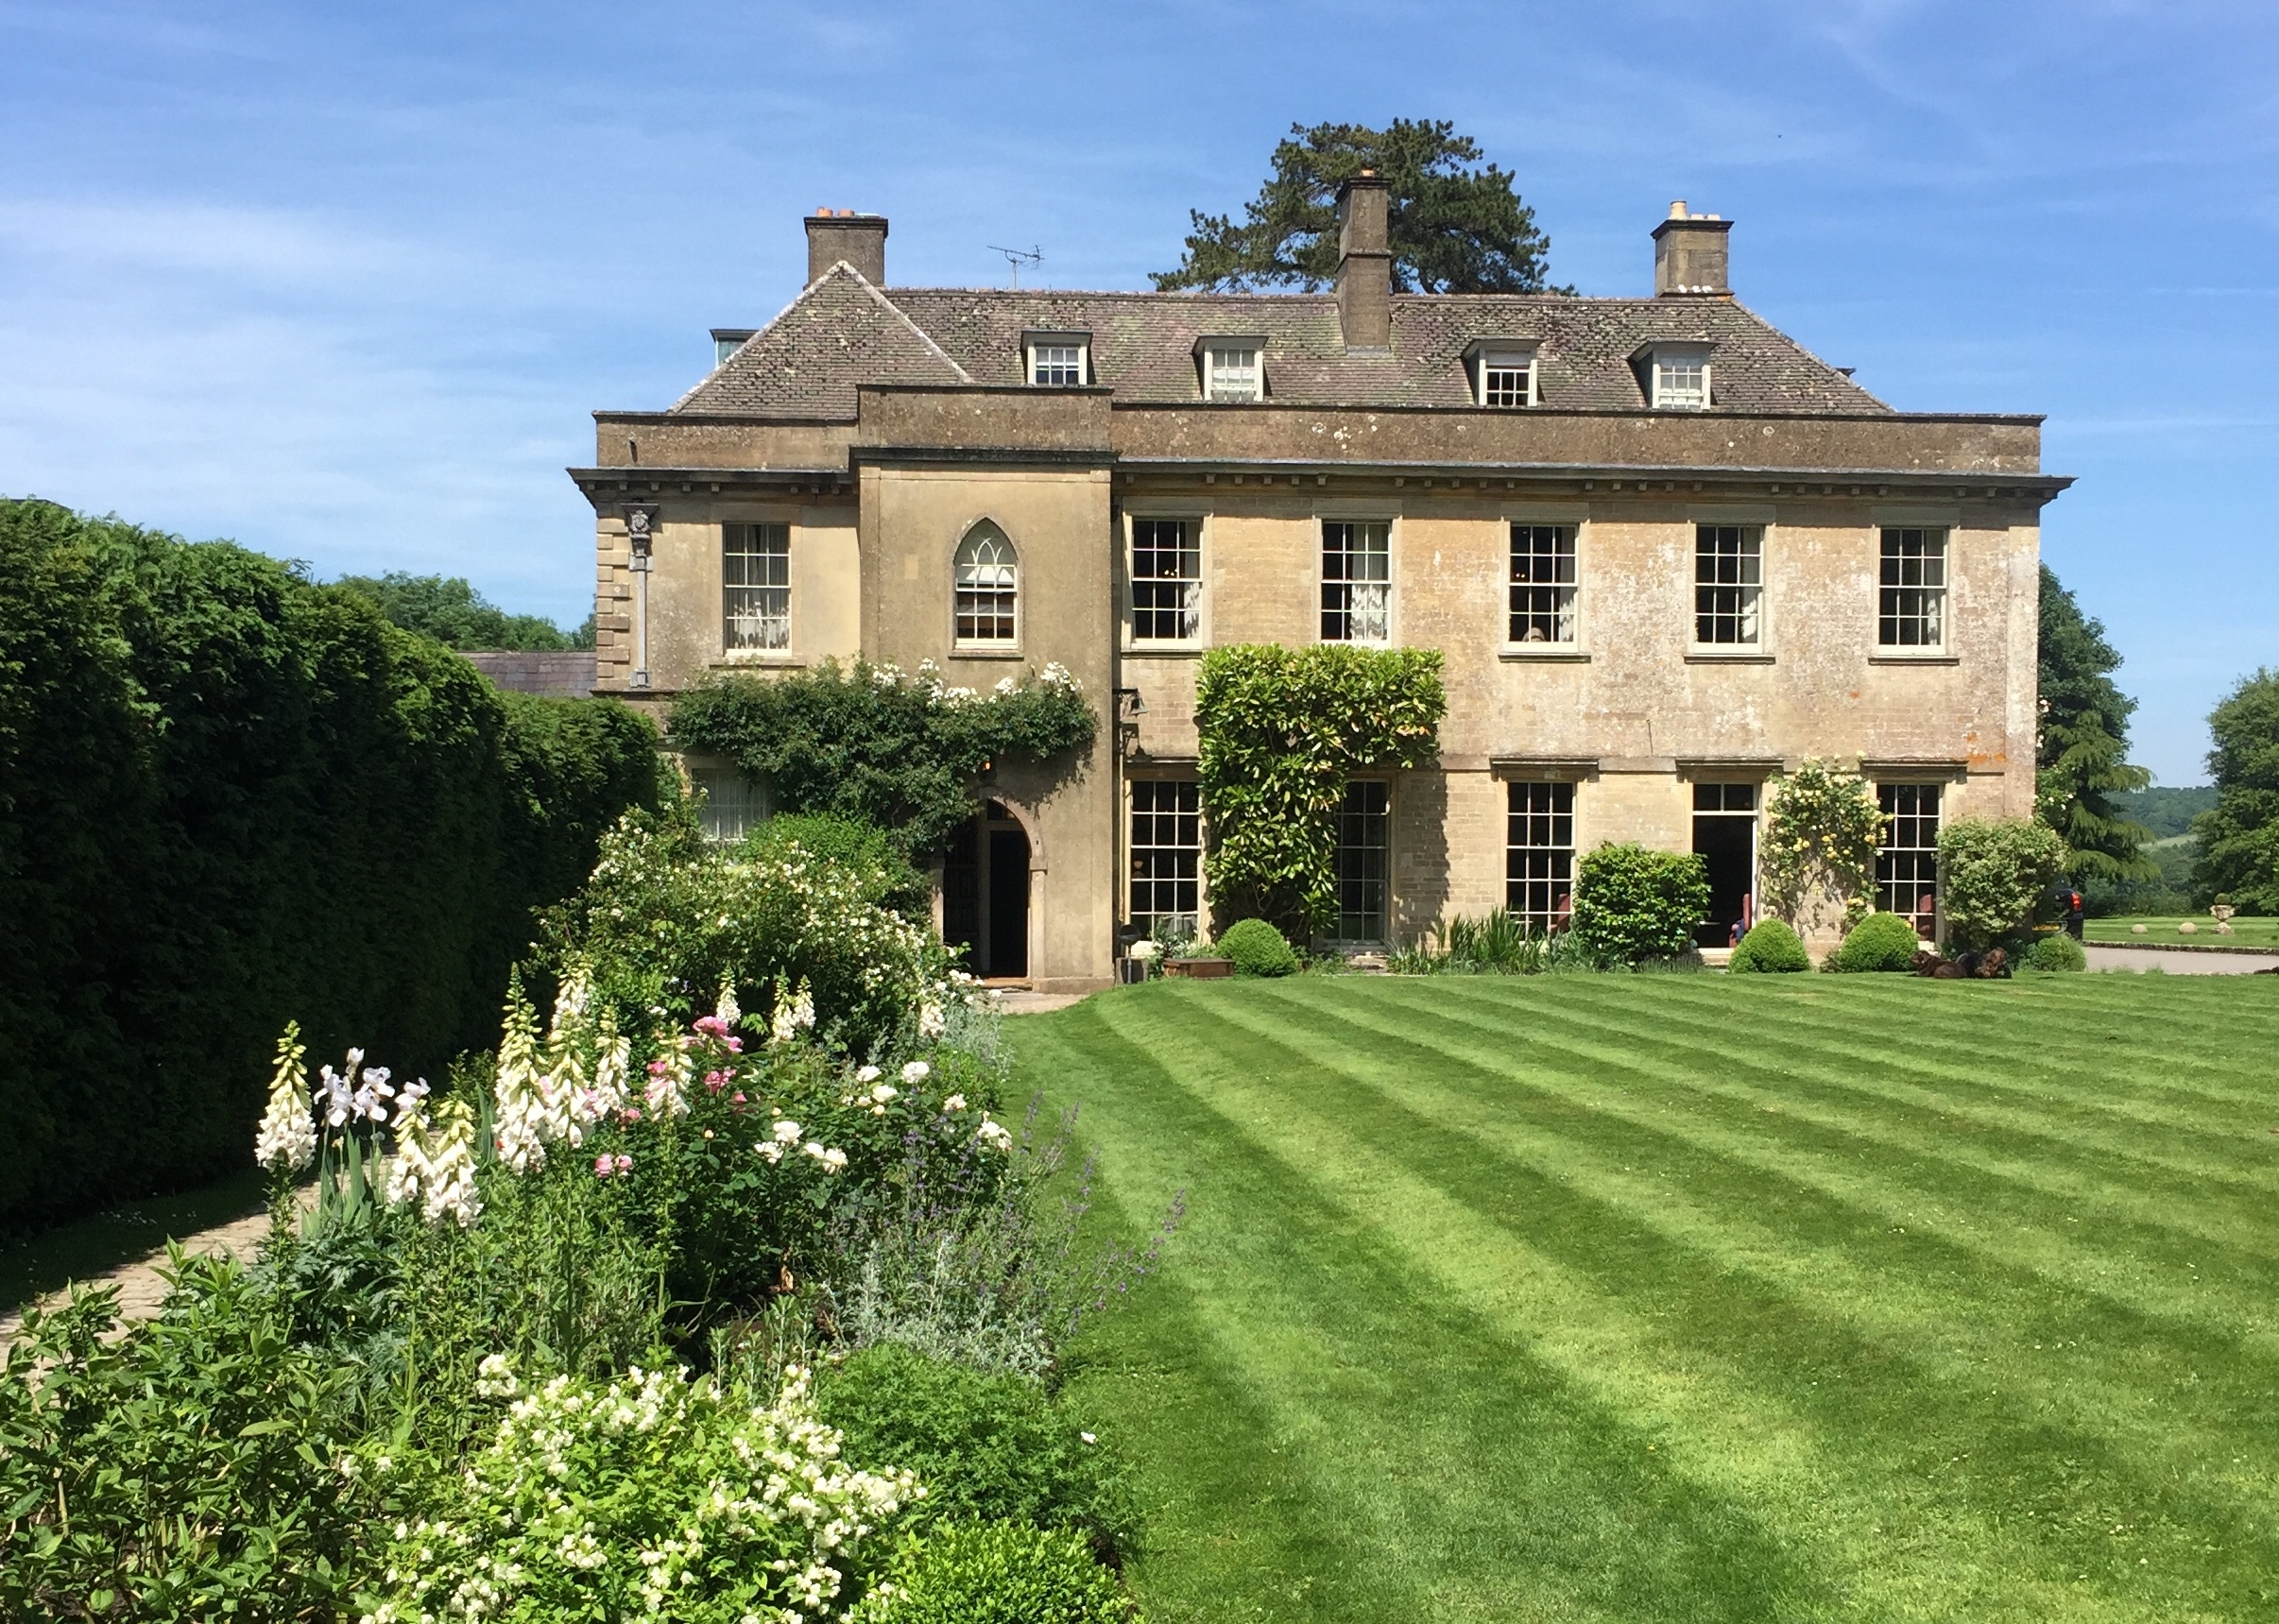 BABINGTON HOUSE - Part of the Soho House group, Babington House is only 2 minutes away. Guests who are members often use Jericho as a base and spend their time over at Babington enjoying the beautiful setting, fabulous pool and Soho House service.